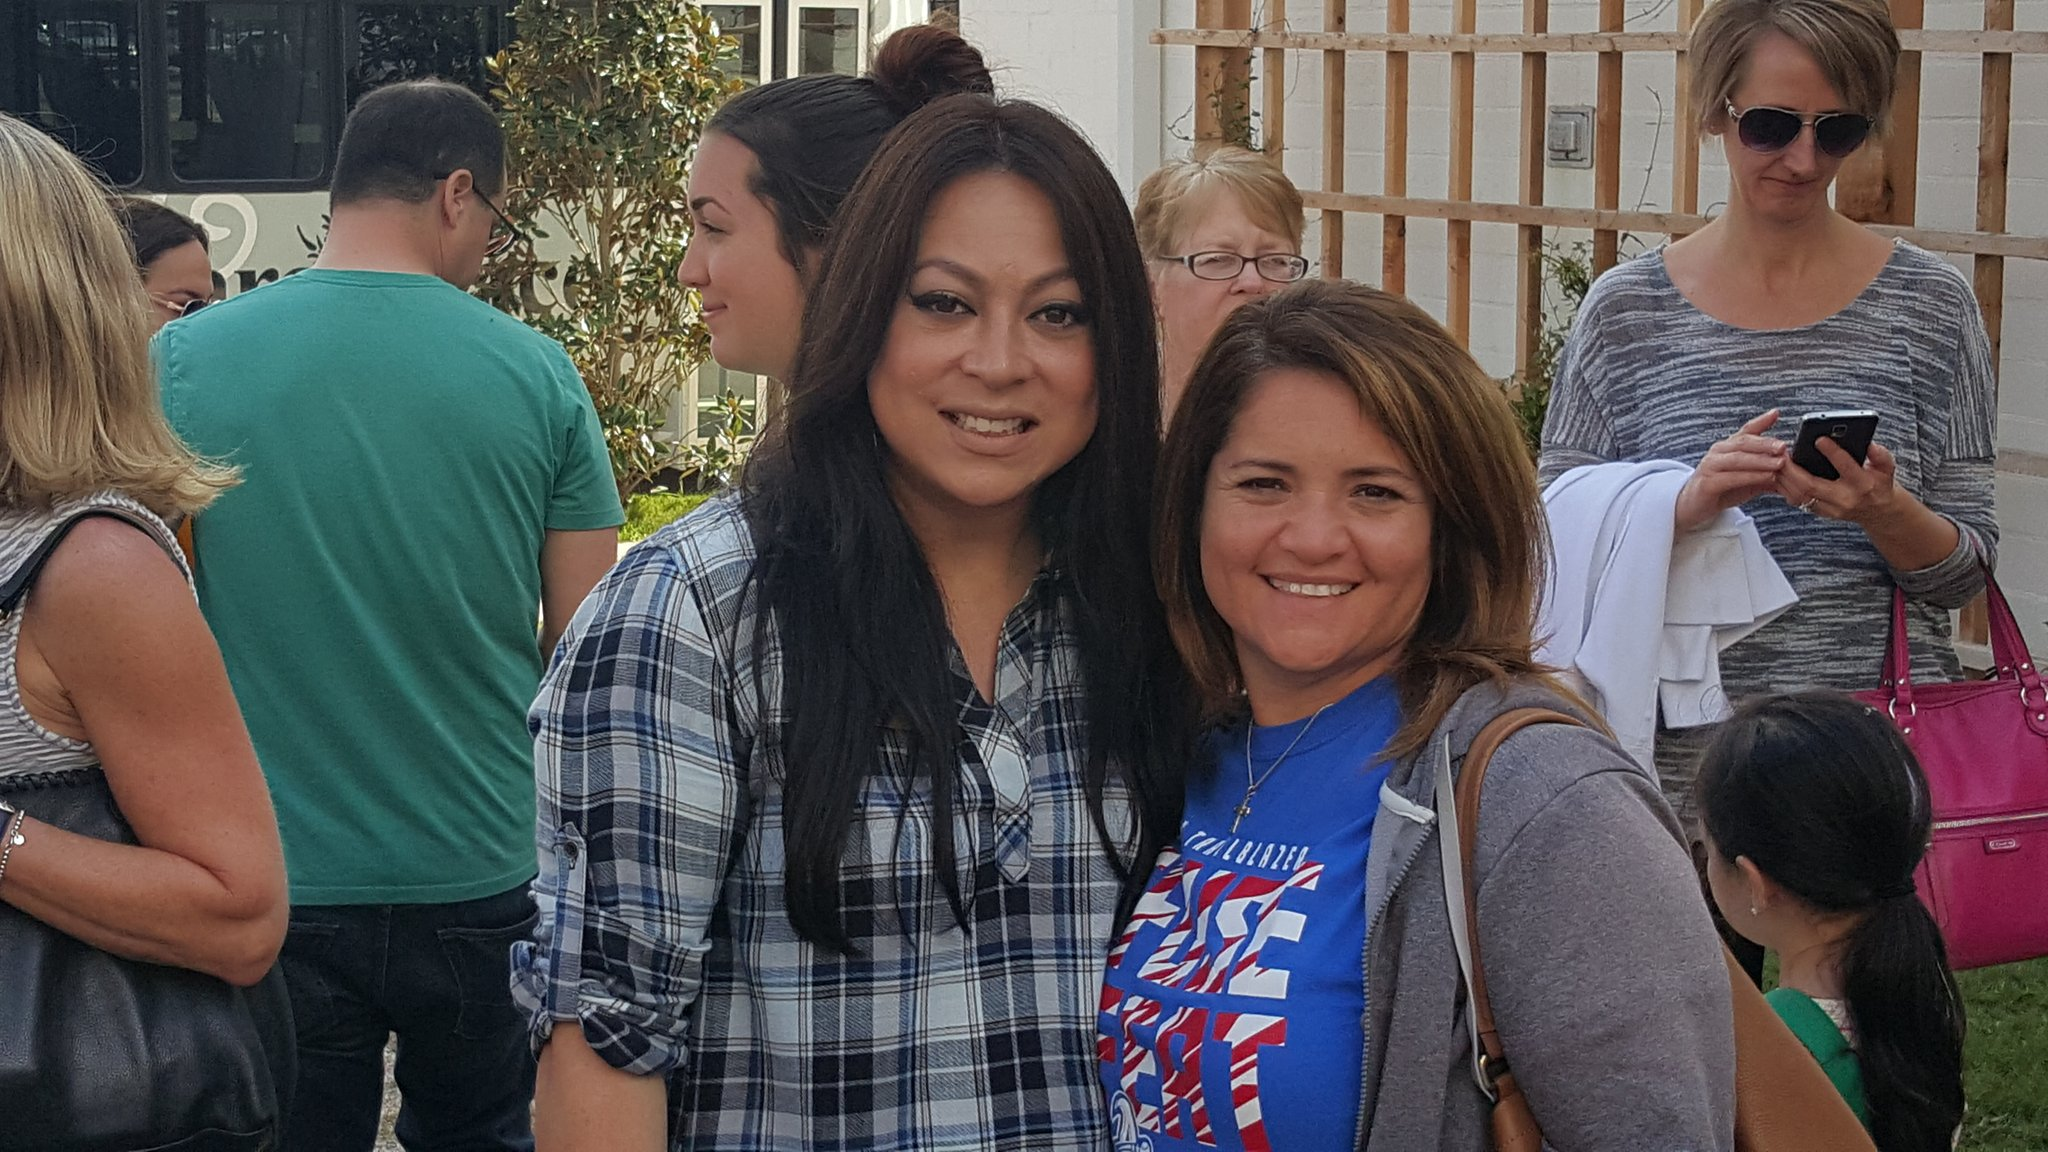 Linda gutierrez on twitter with joanna gaines sister for Does chip carter gaines have siblings